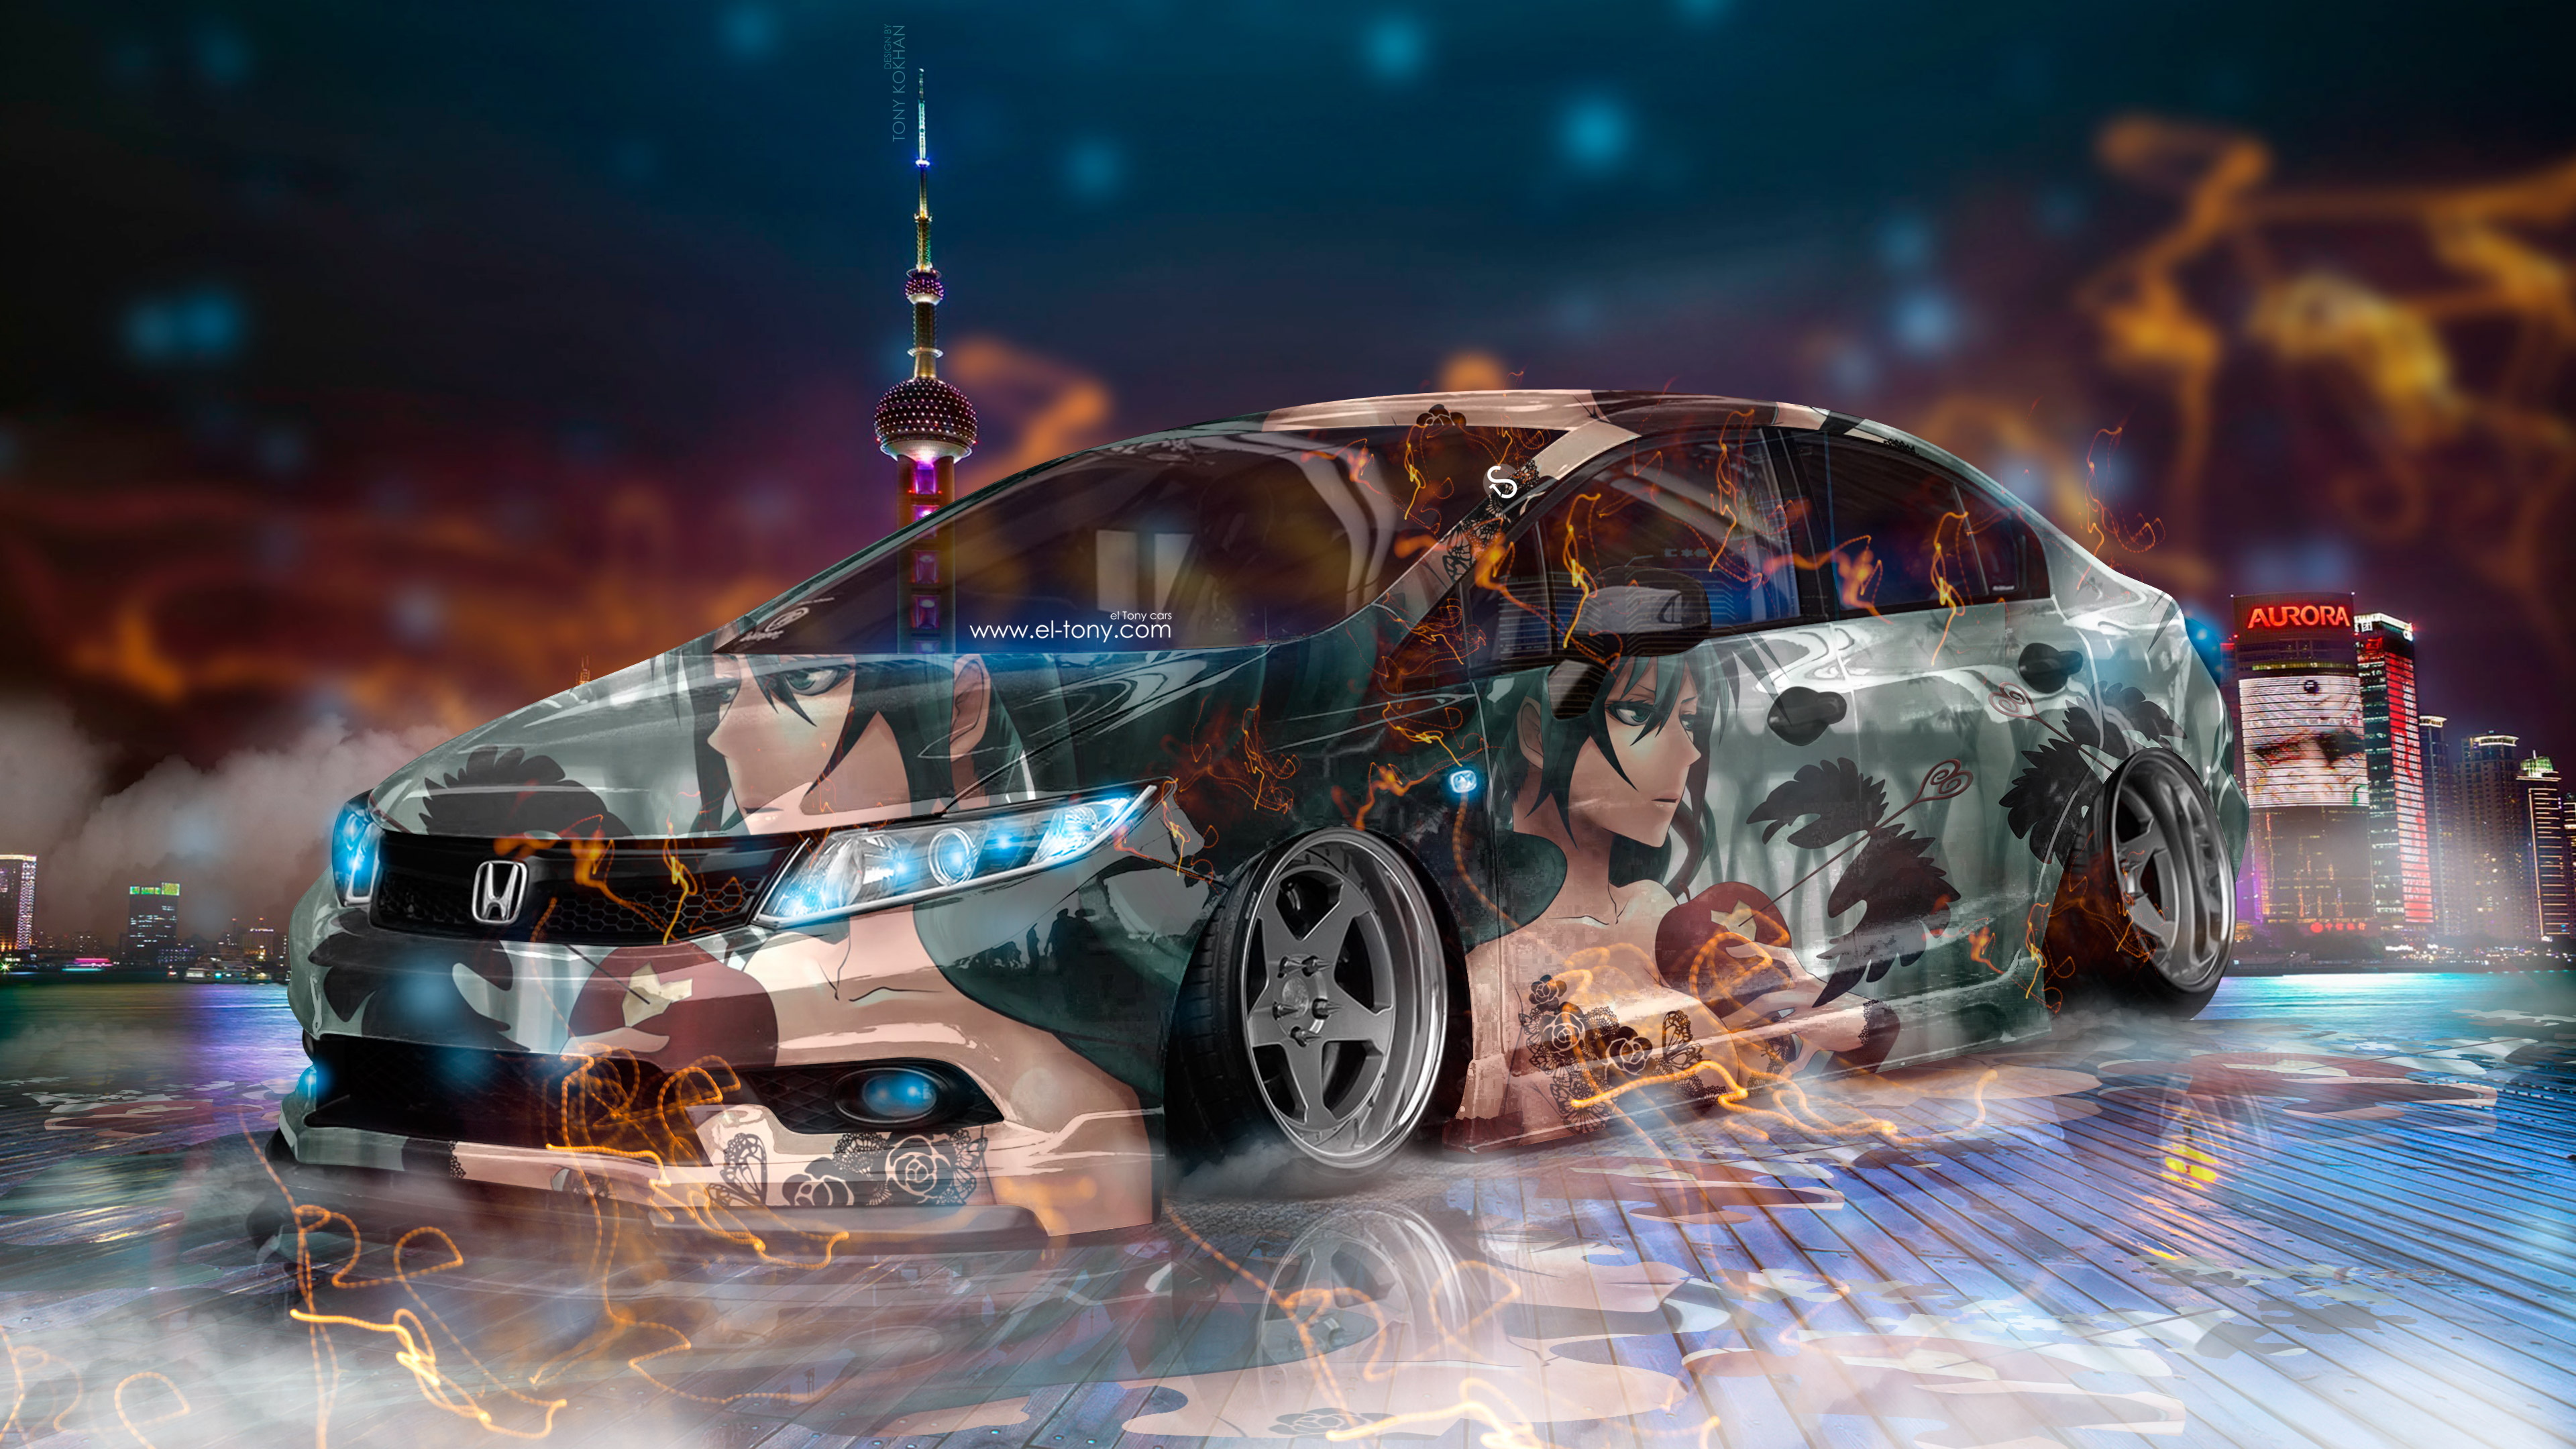 Honda Civic JDM Tuning Super Anime Girl Energy Night City Fog Smoke Car 2017